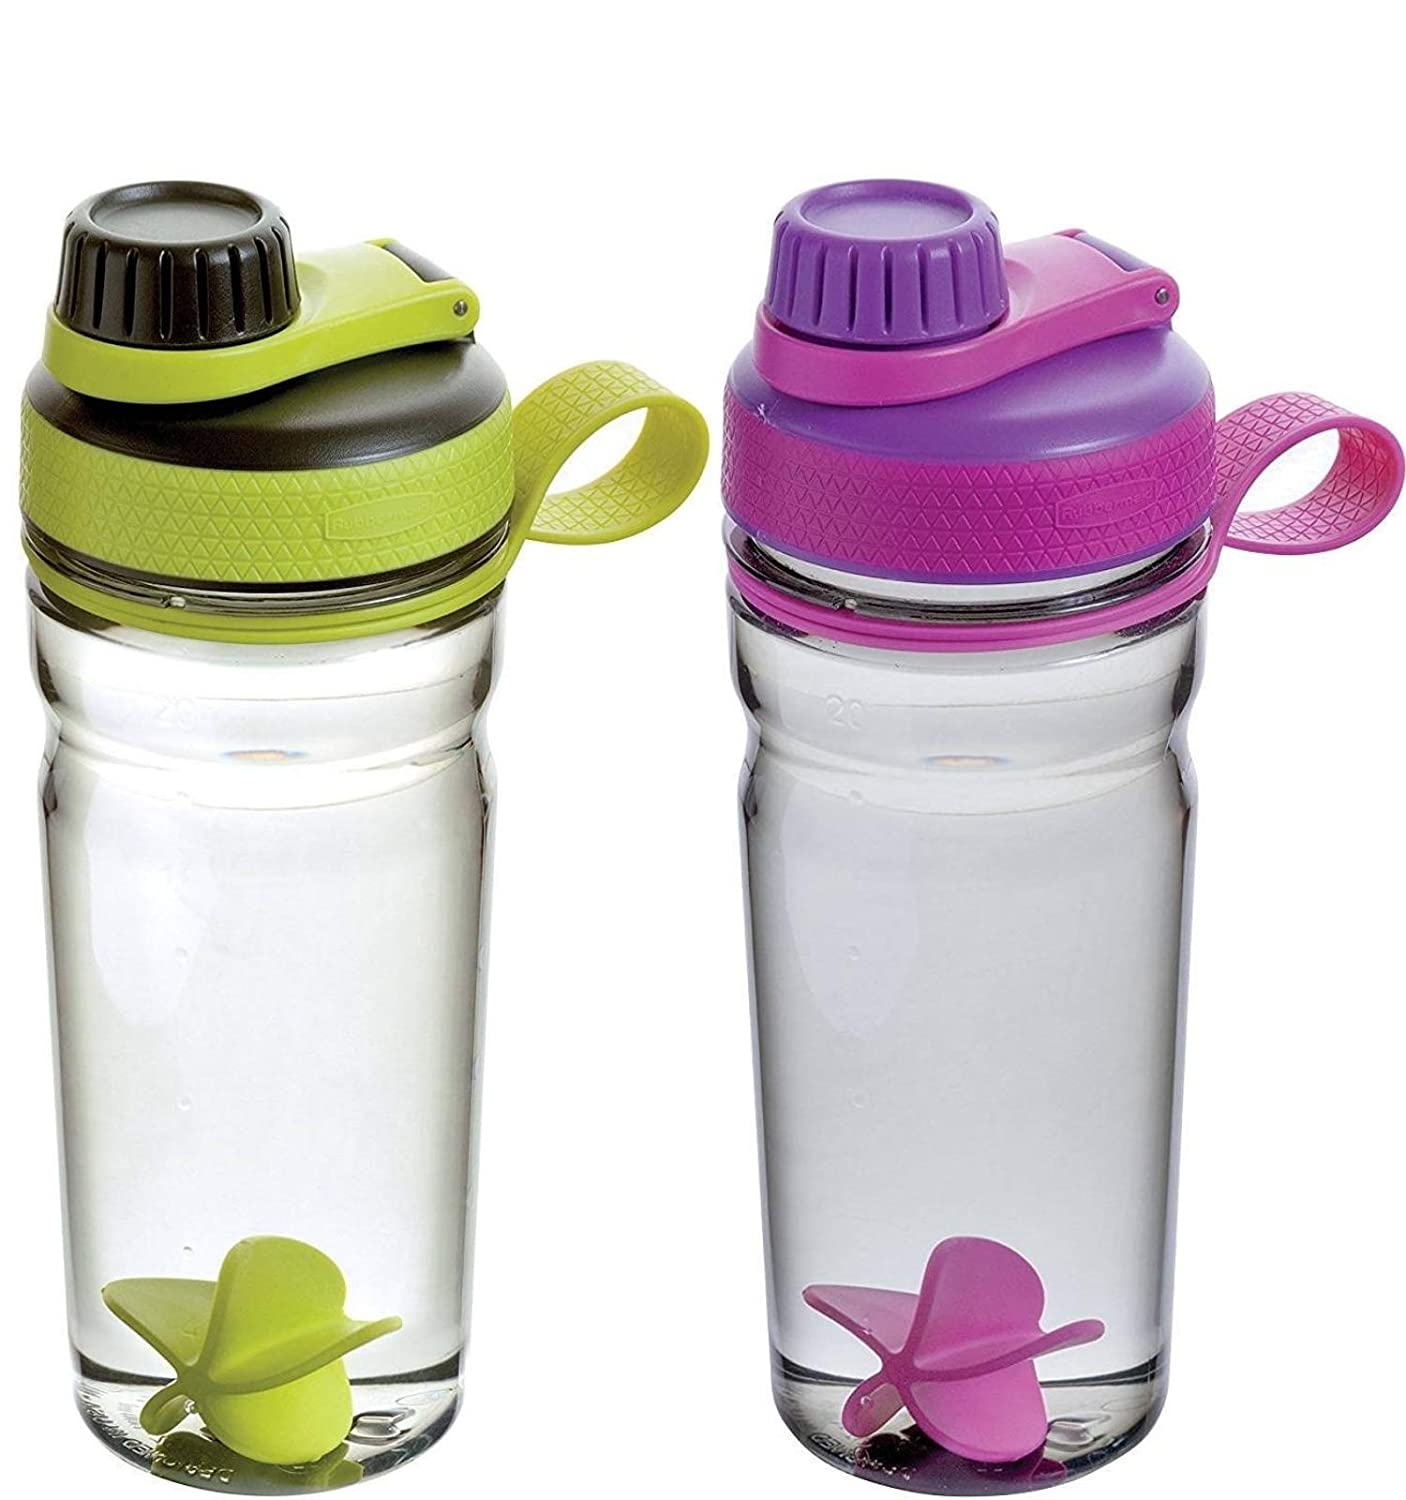 Rubbermaid Shaker Bottle-Odor & Stain Resistant-Great for Mixing Protein Shakes, Juices, Smoothies-BPA-Free, Finger Loop, Five-Sided Paddle Ball for Blending, 20oz, Green/Black & Purple -2 Pack